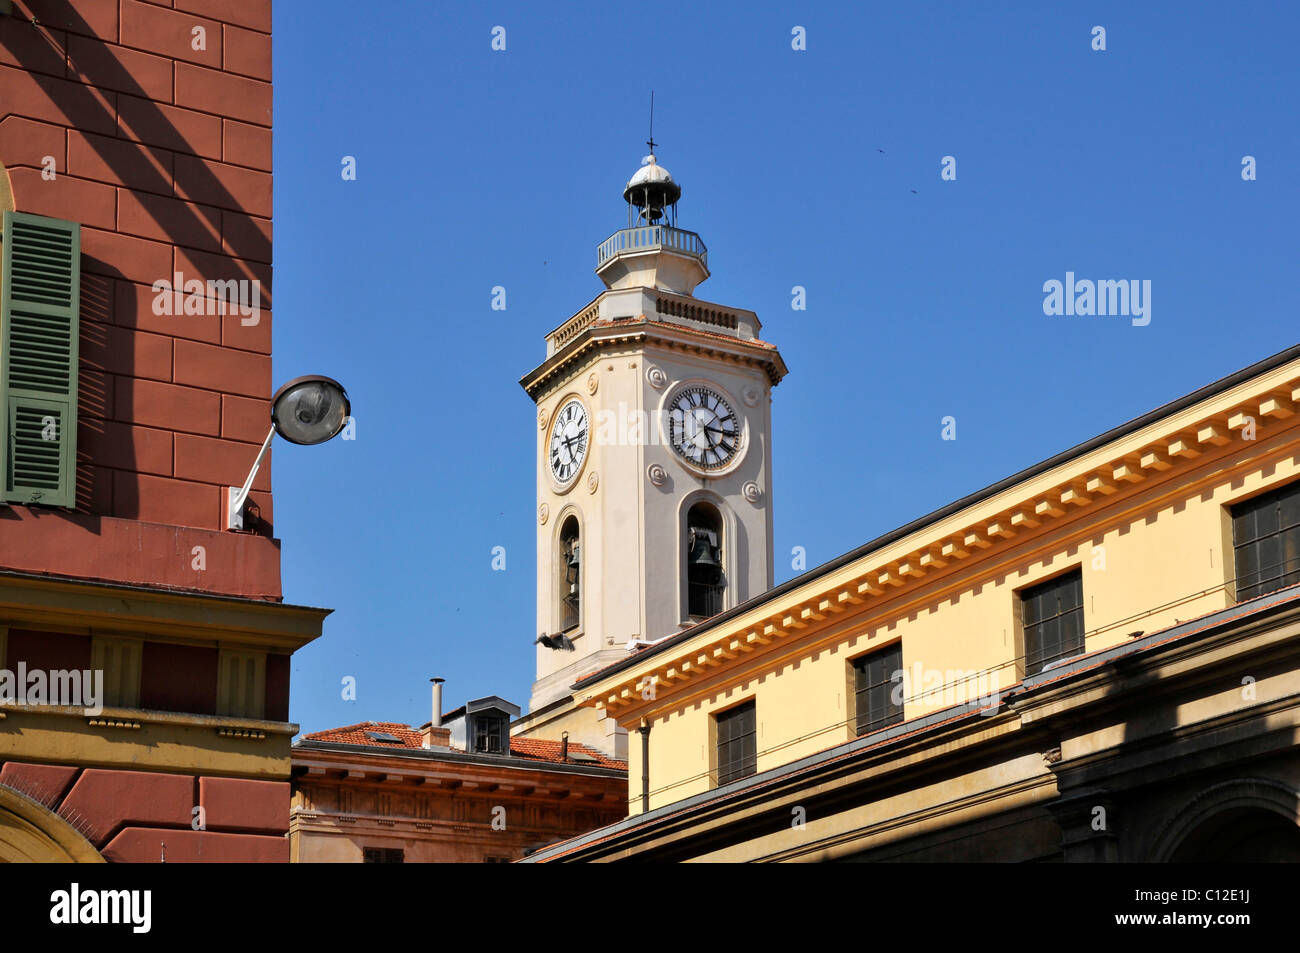 Bell tower of church in Nice in southeastern France, department Alpes maritimes - Stock Image